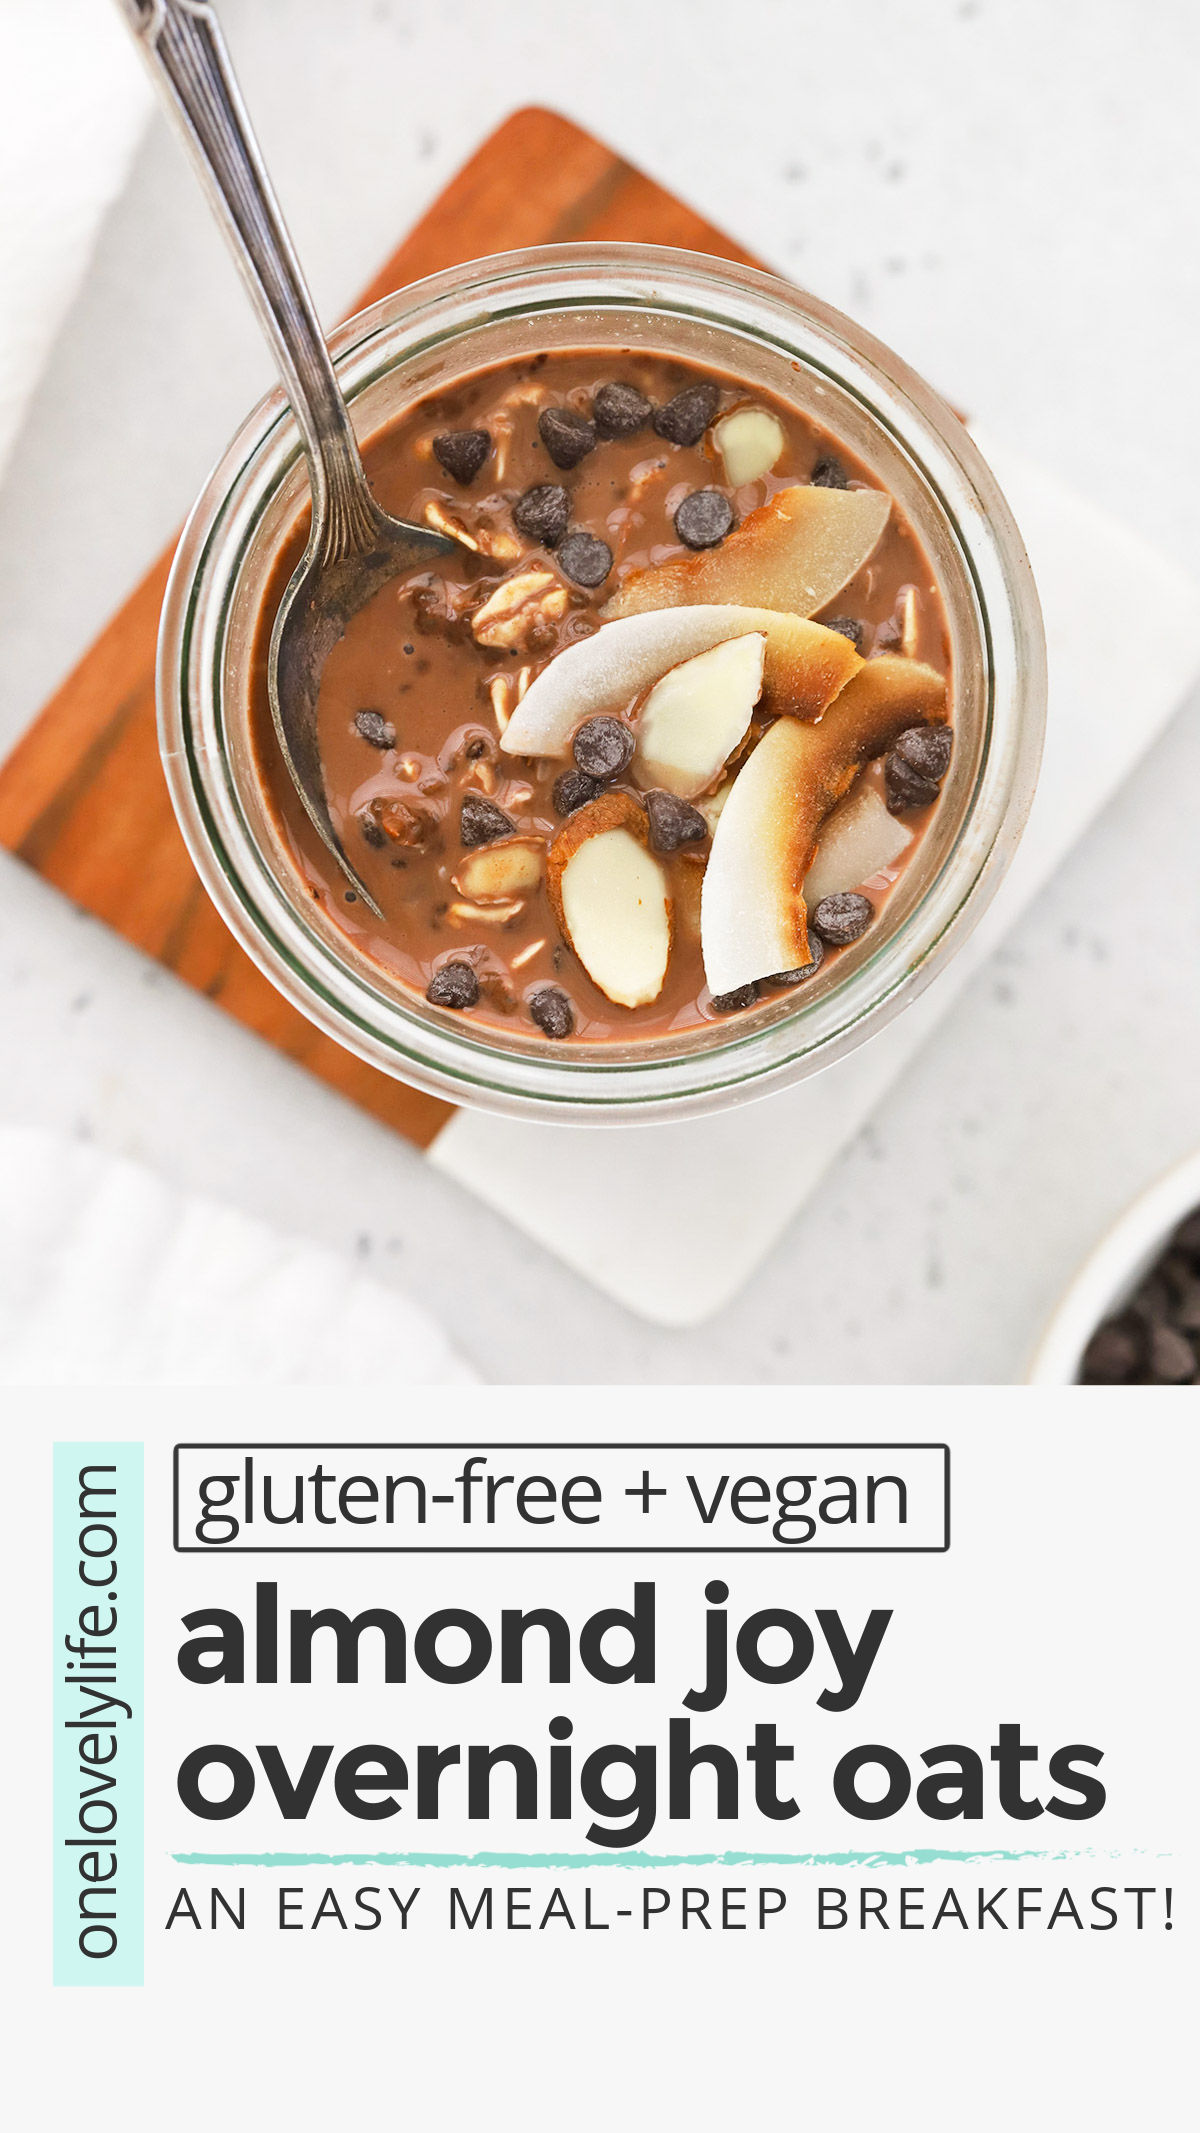 Almond Joy Overnight Oats - These creamy chocolate coconut overnight oats feel like such a treat to wake up to! (Vegan, Gluten-Free) // Healthy Breakfast // Vegan Breakfast // Gluten Free Breakfast // Chocolate Overnight Oats // Vegan Overnight Oats #almondjoy #overnightoats #healthybreakfast #vegan #glutenfree